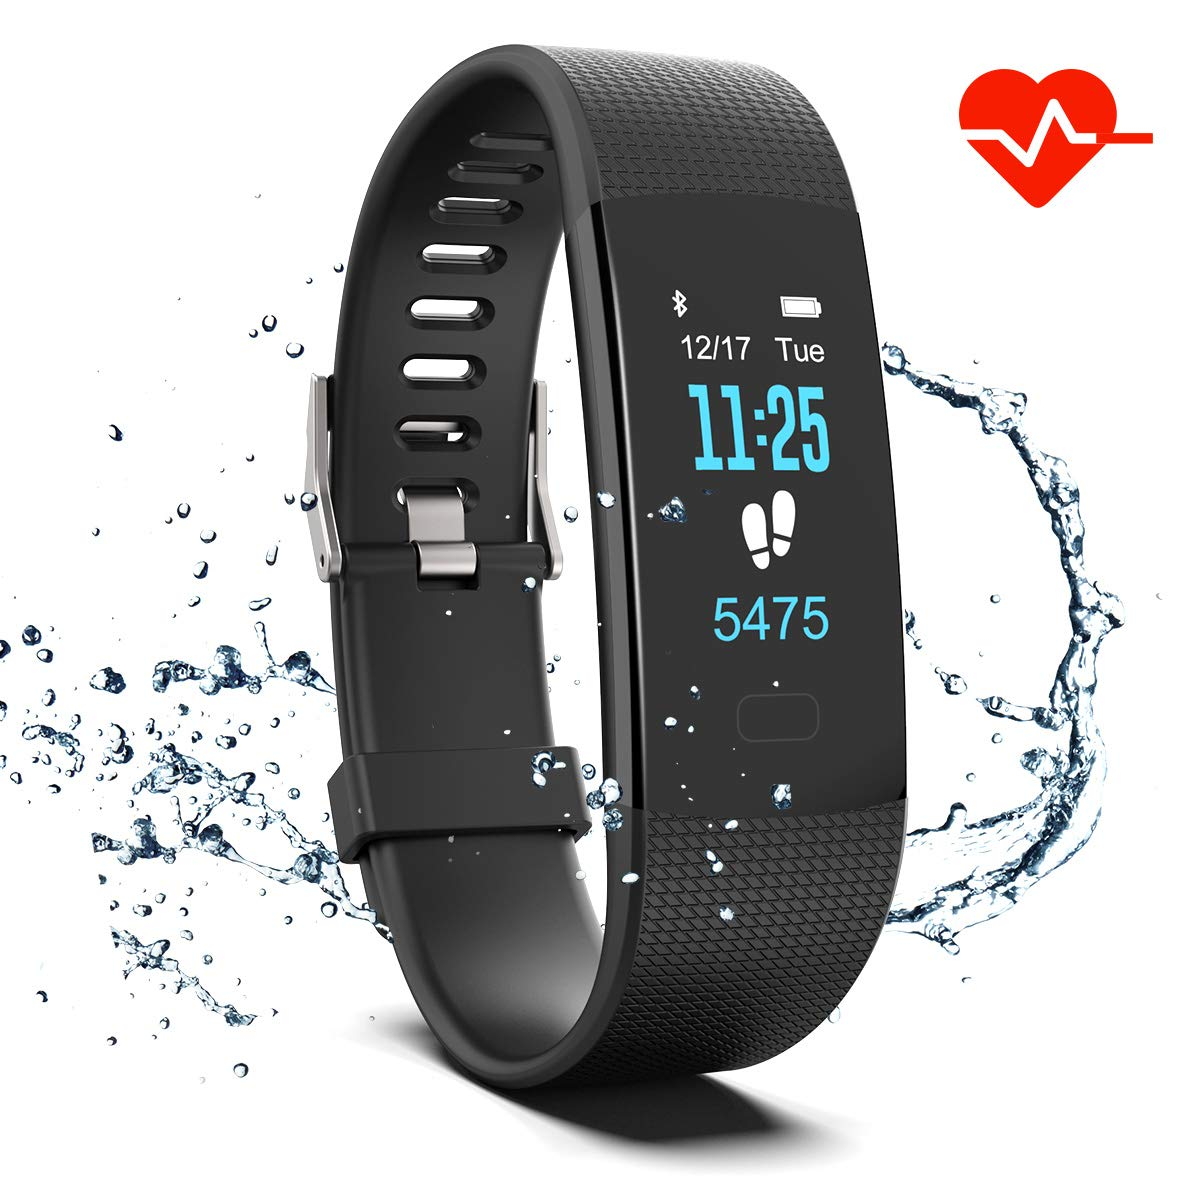 Fitness Tracker HR, Y1 Activity Tracker Watch with Heart Rate Monitor, Pedometer IP67 Waterproof Sleep Monitor Step Counter for Android & iPhone (Black)